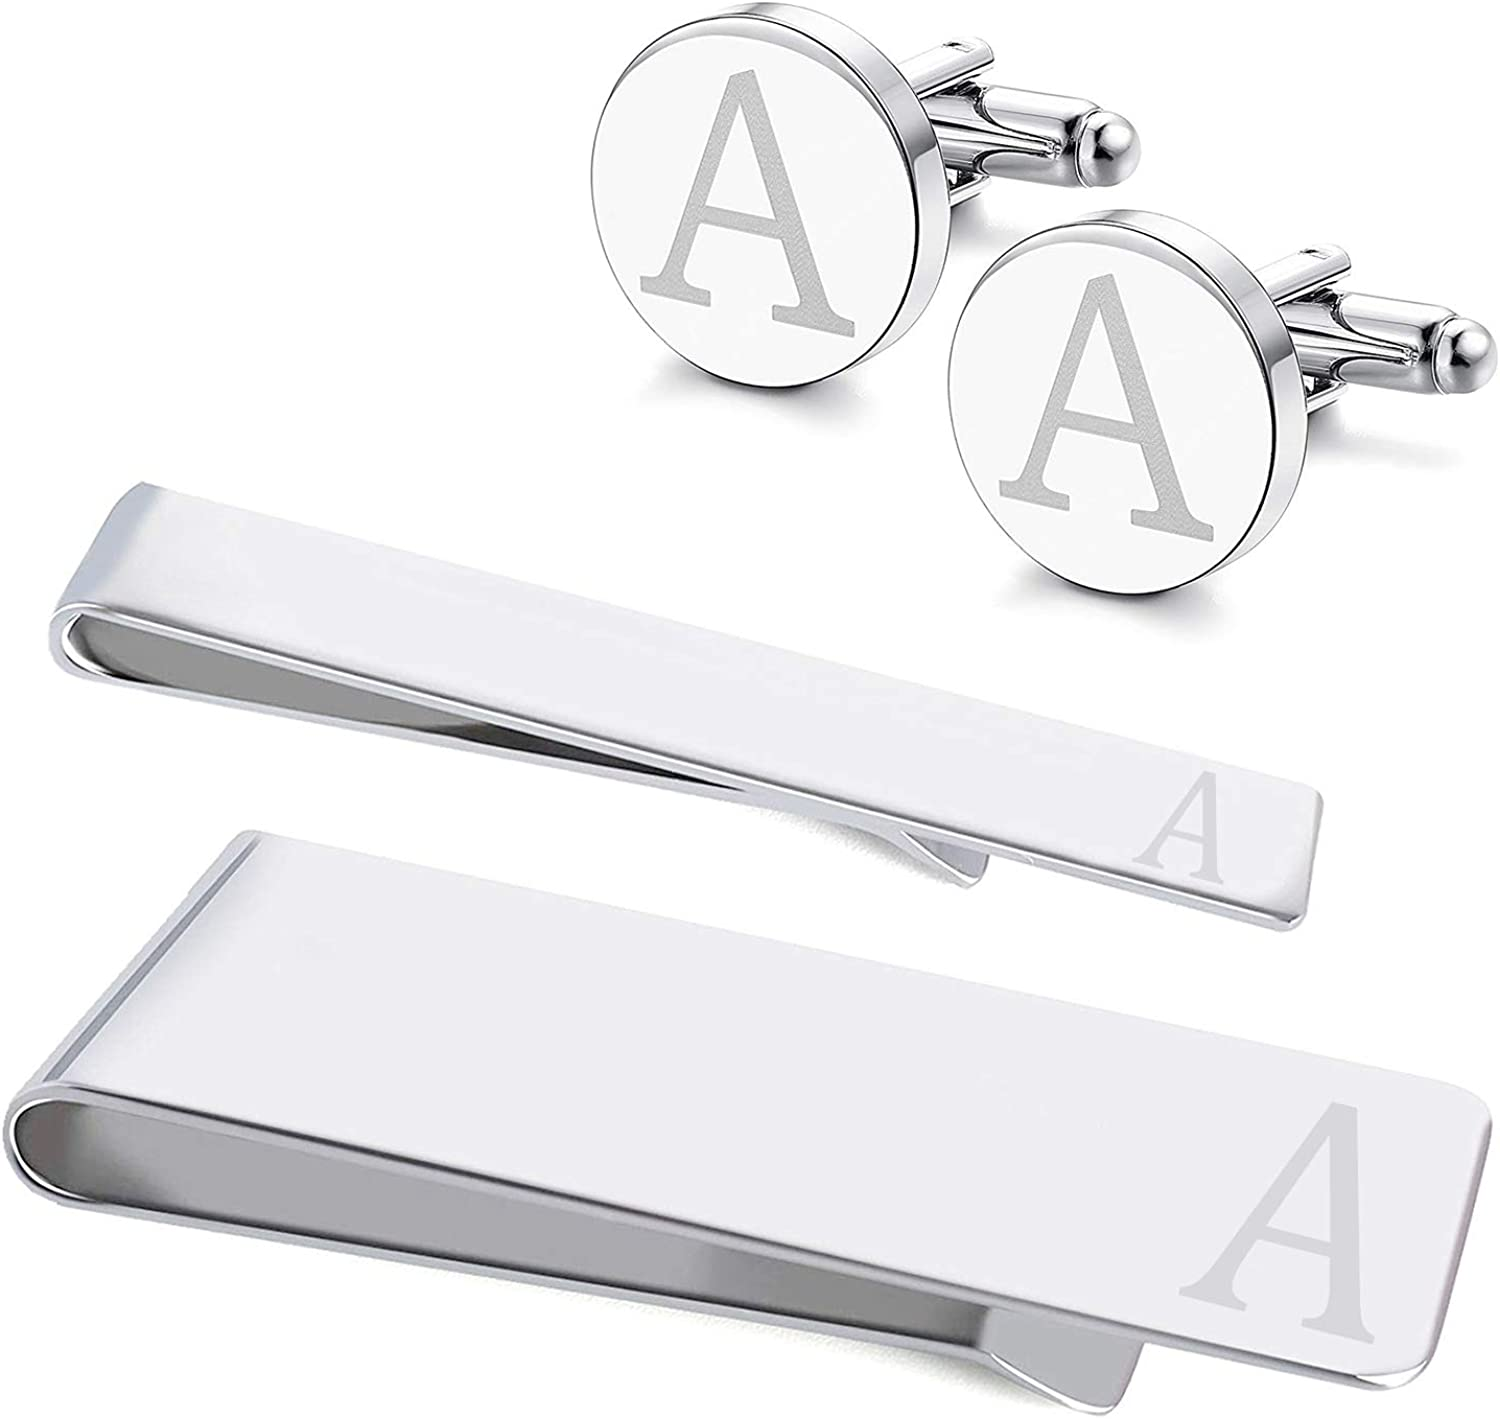 eejart 4PCS A Set Cufflinks Tie Clips Money Clips for Men 316L Stainless Steel Cufflinks Personalized Engraved Initials A/H Business Wedding with Box